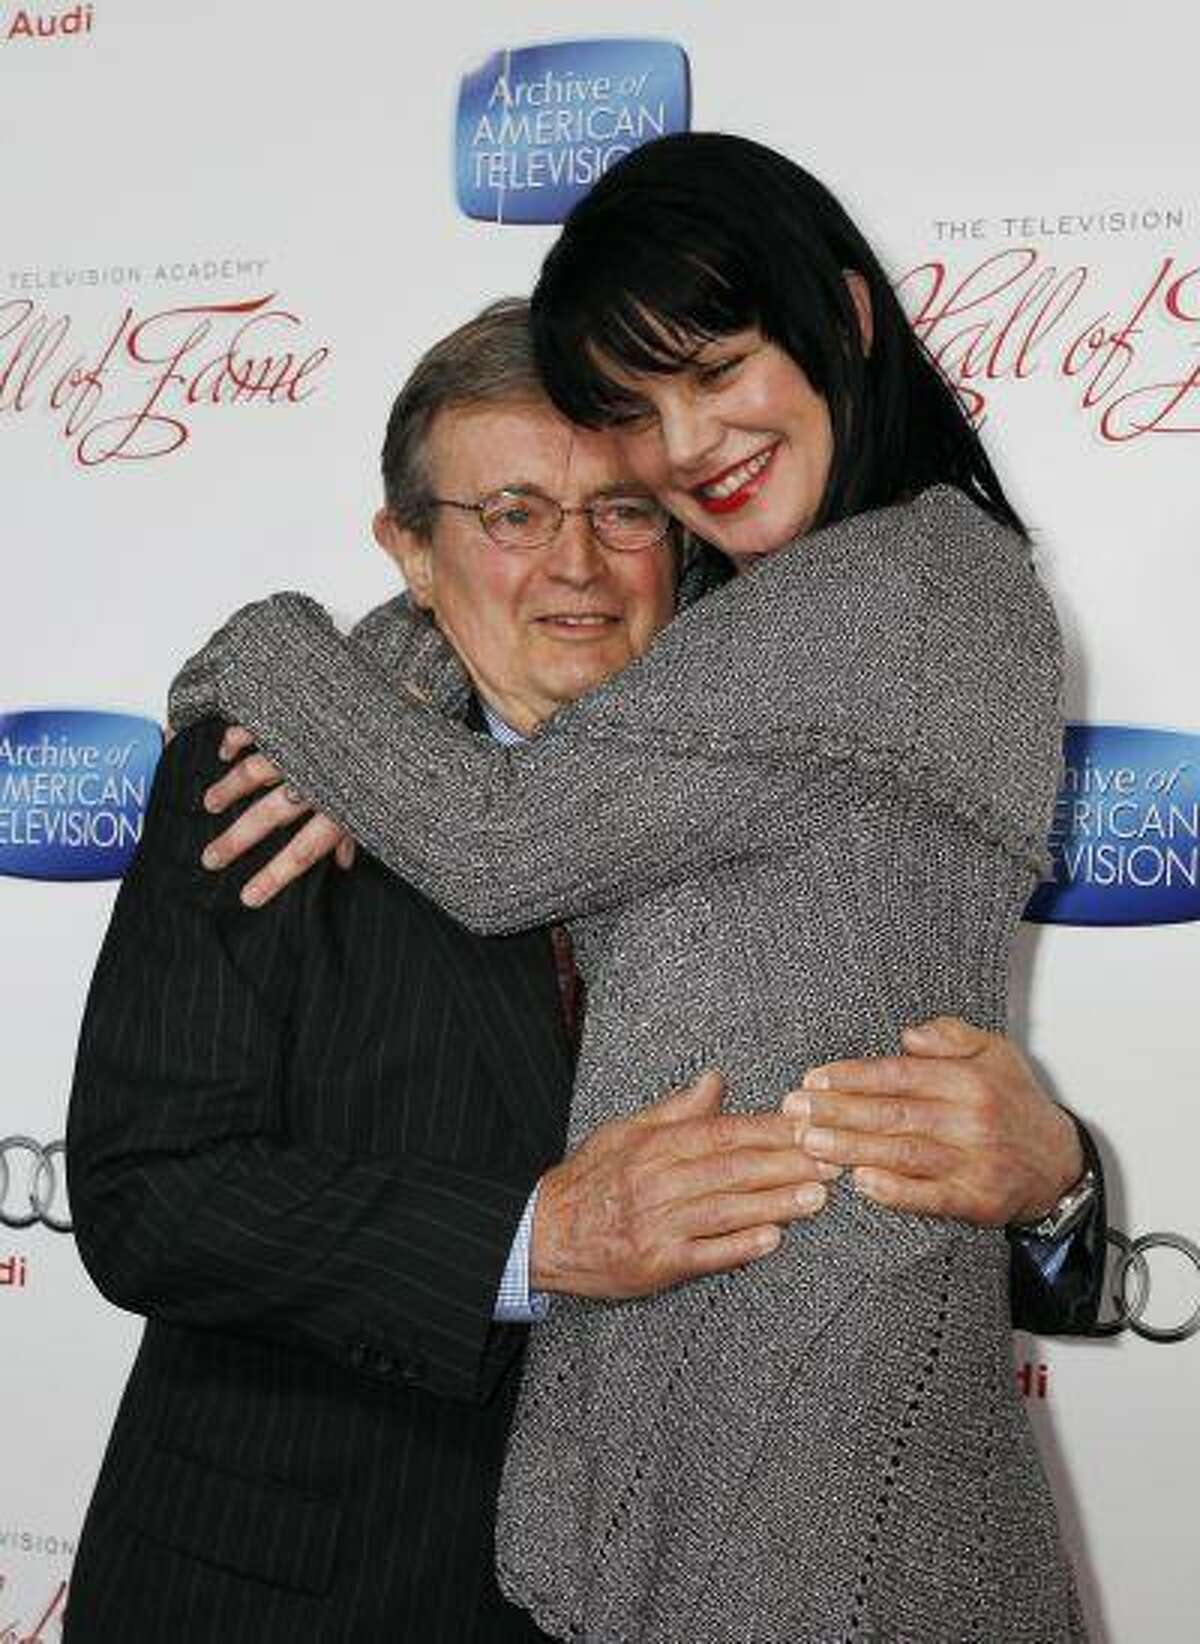 """Actor David McCallum poses with co-star Pauley Perrette, both stars of the TV series """"NCIS"""" at Academy of Television Arts & Sciences 22nd annual Hall of Fame gala in Beverly Hills, Calif. (REUTERS/Fred Prouser)"""